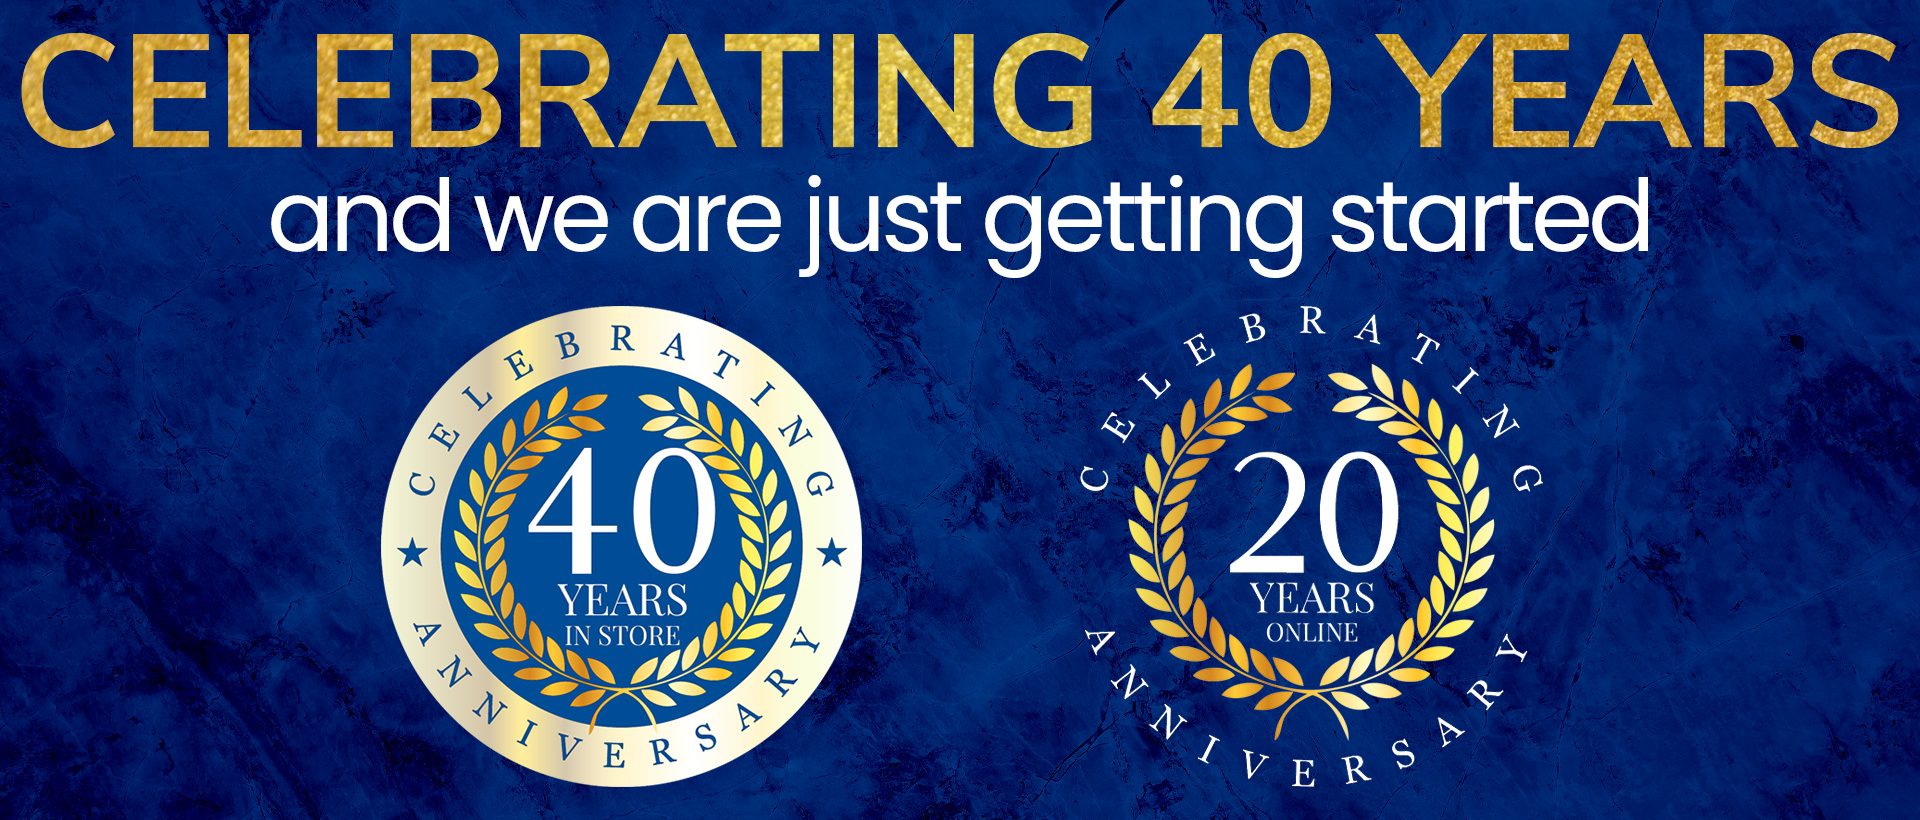 Celebrating 40 years & we are just getting started